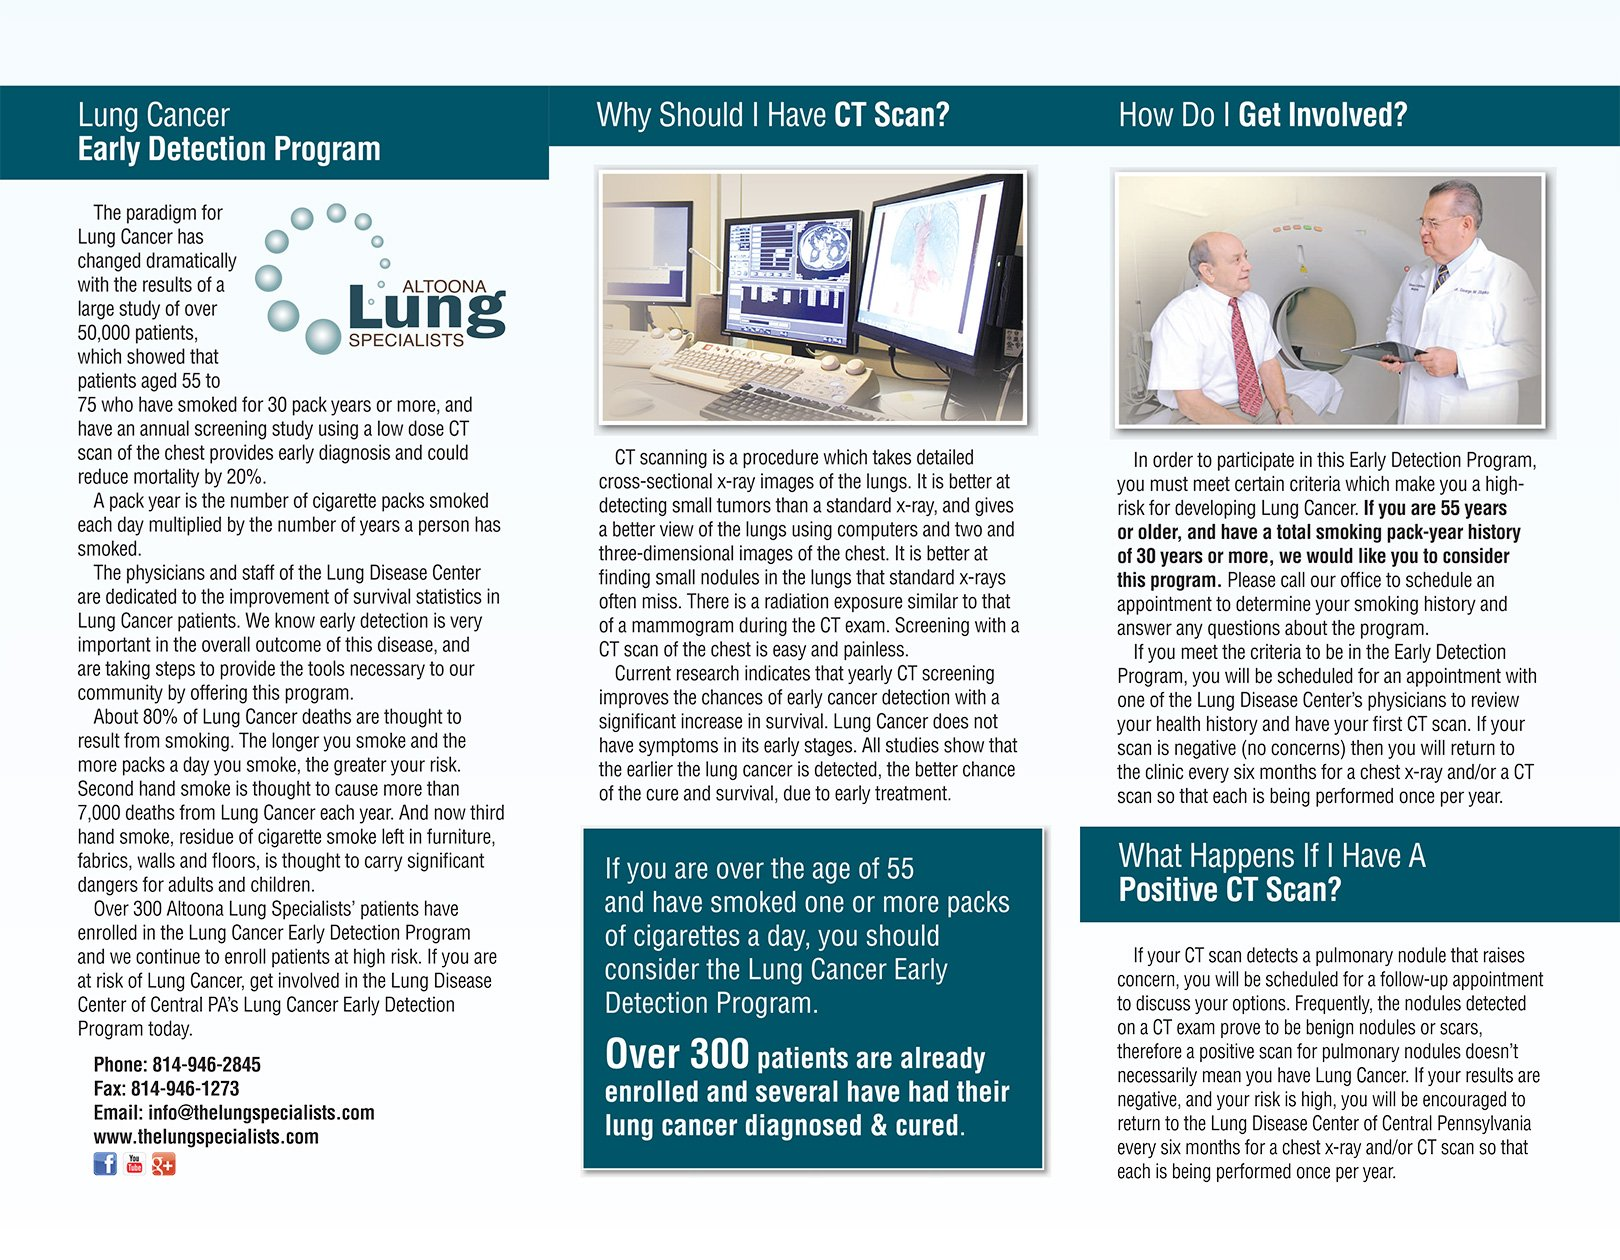 LUNG CANCER EARLY DETECTION PROGRAM 2